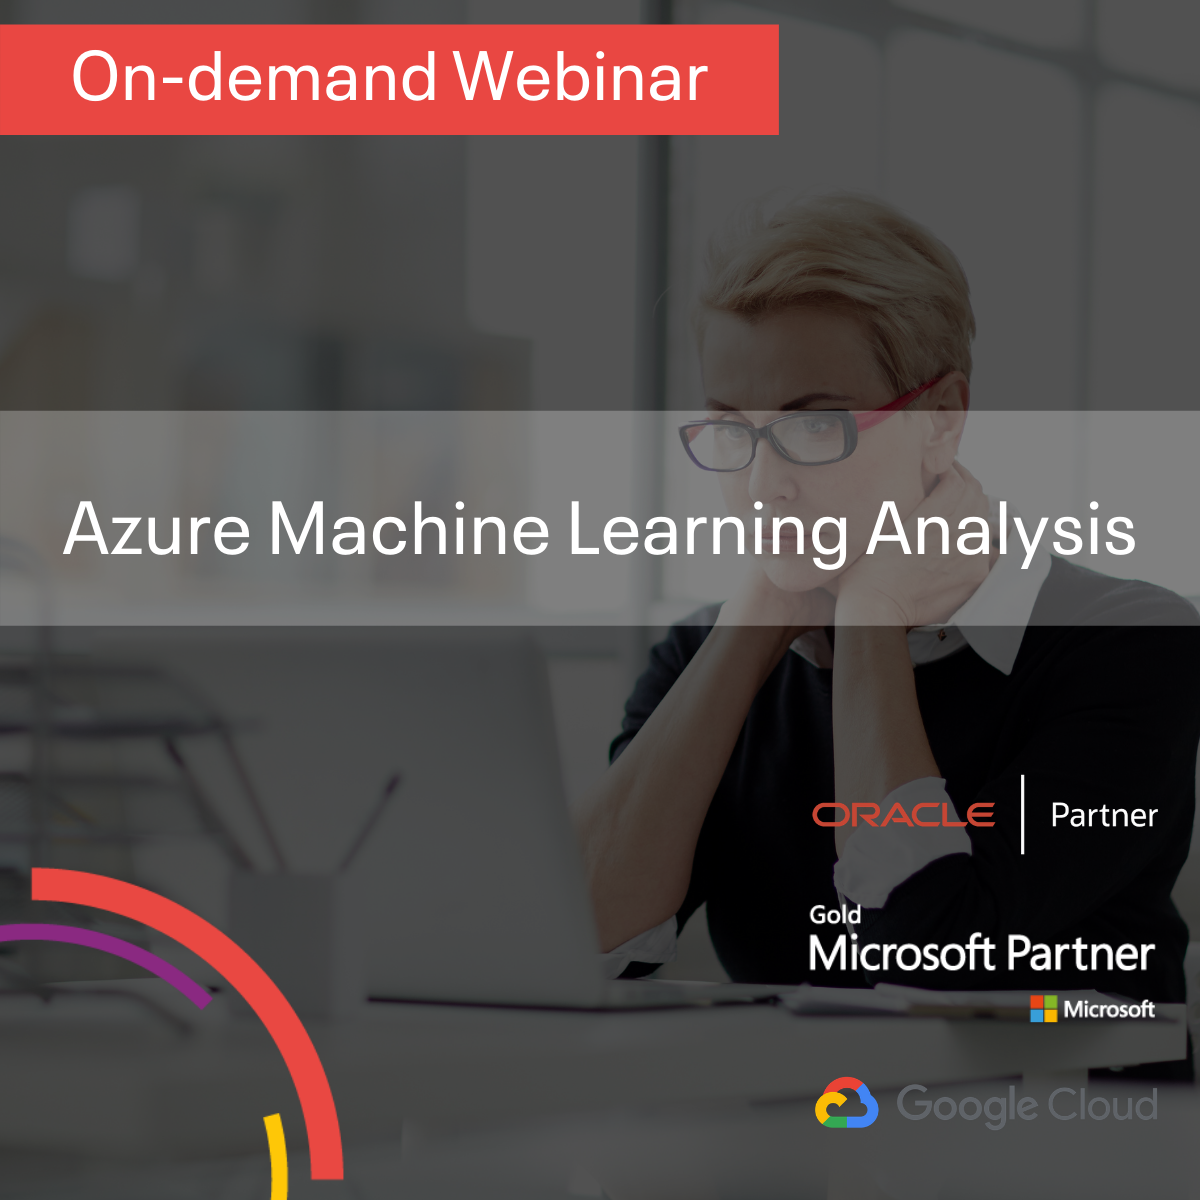 Azure Machine Learning Analysis: What's on Your Watch List?